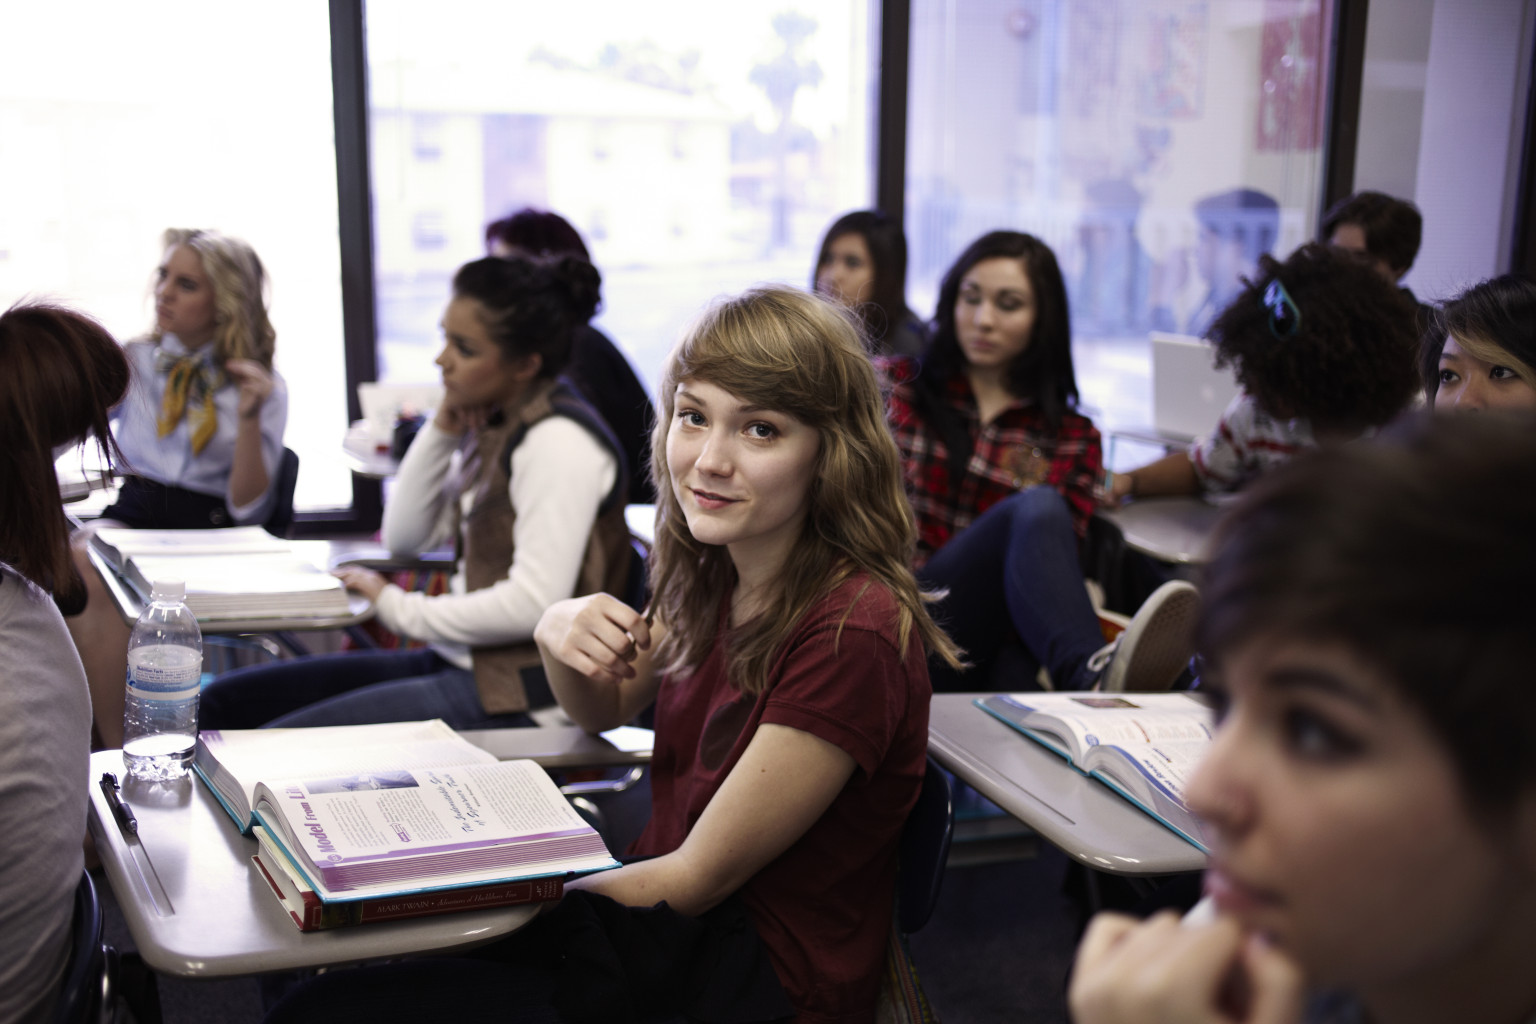 Teens, Anxiety and School Safety   HuffPost